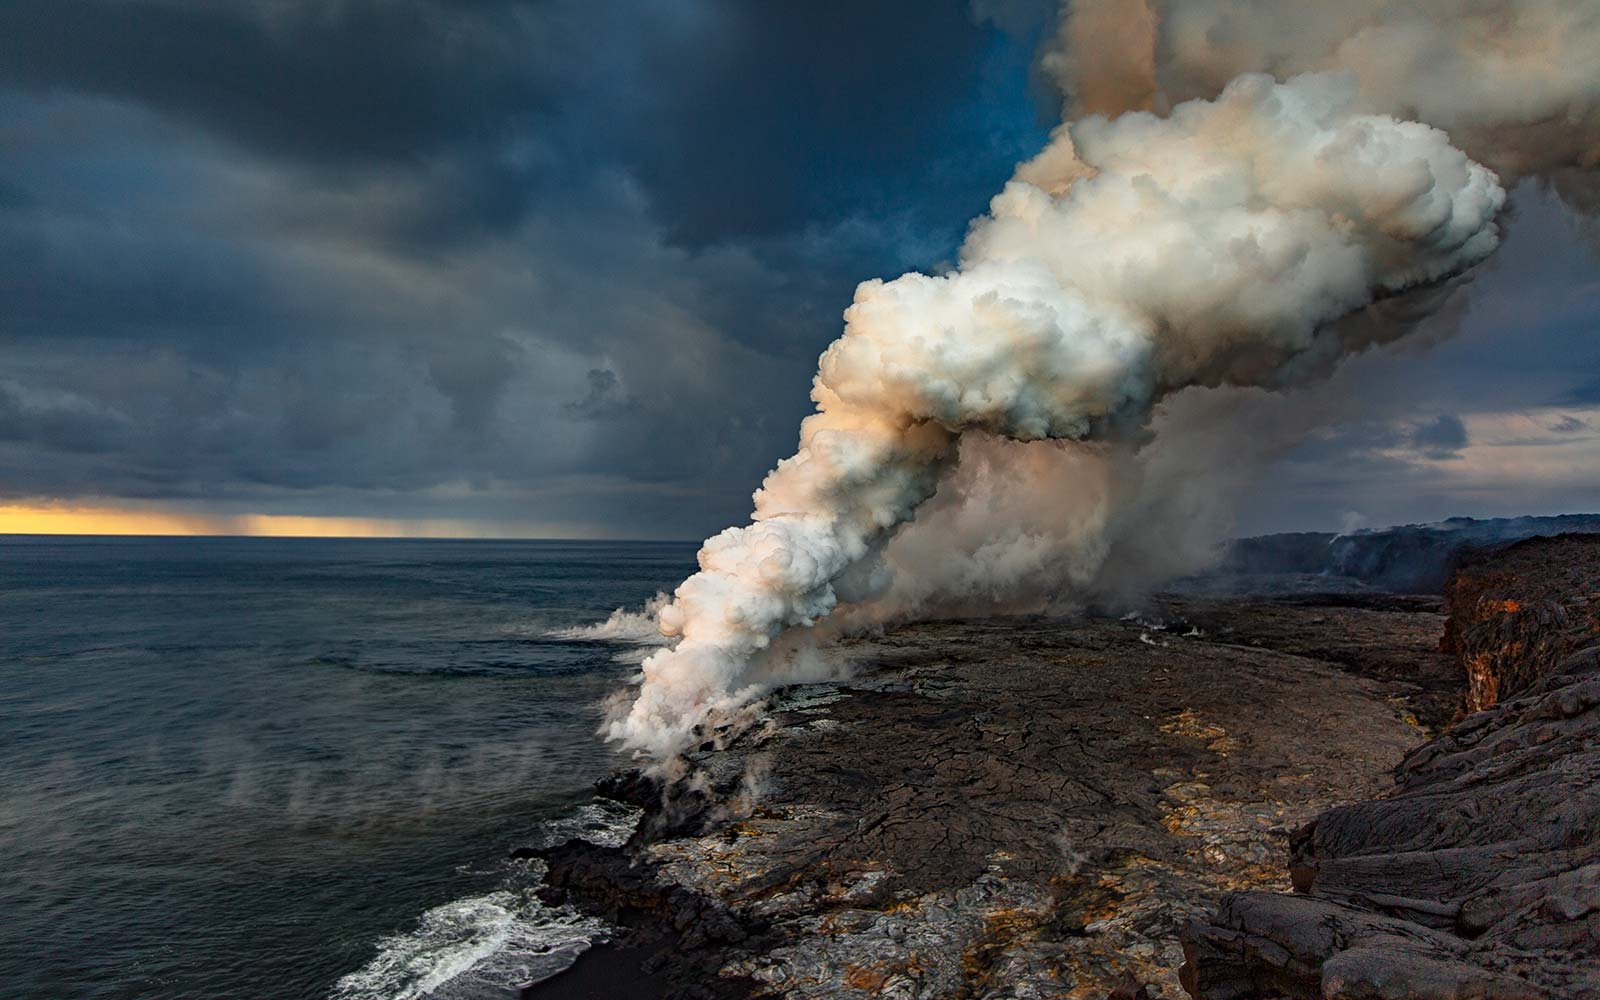 The Ocean Lava Entry Points at Hawaii Volcanoes National Park